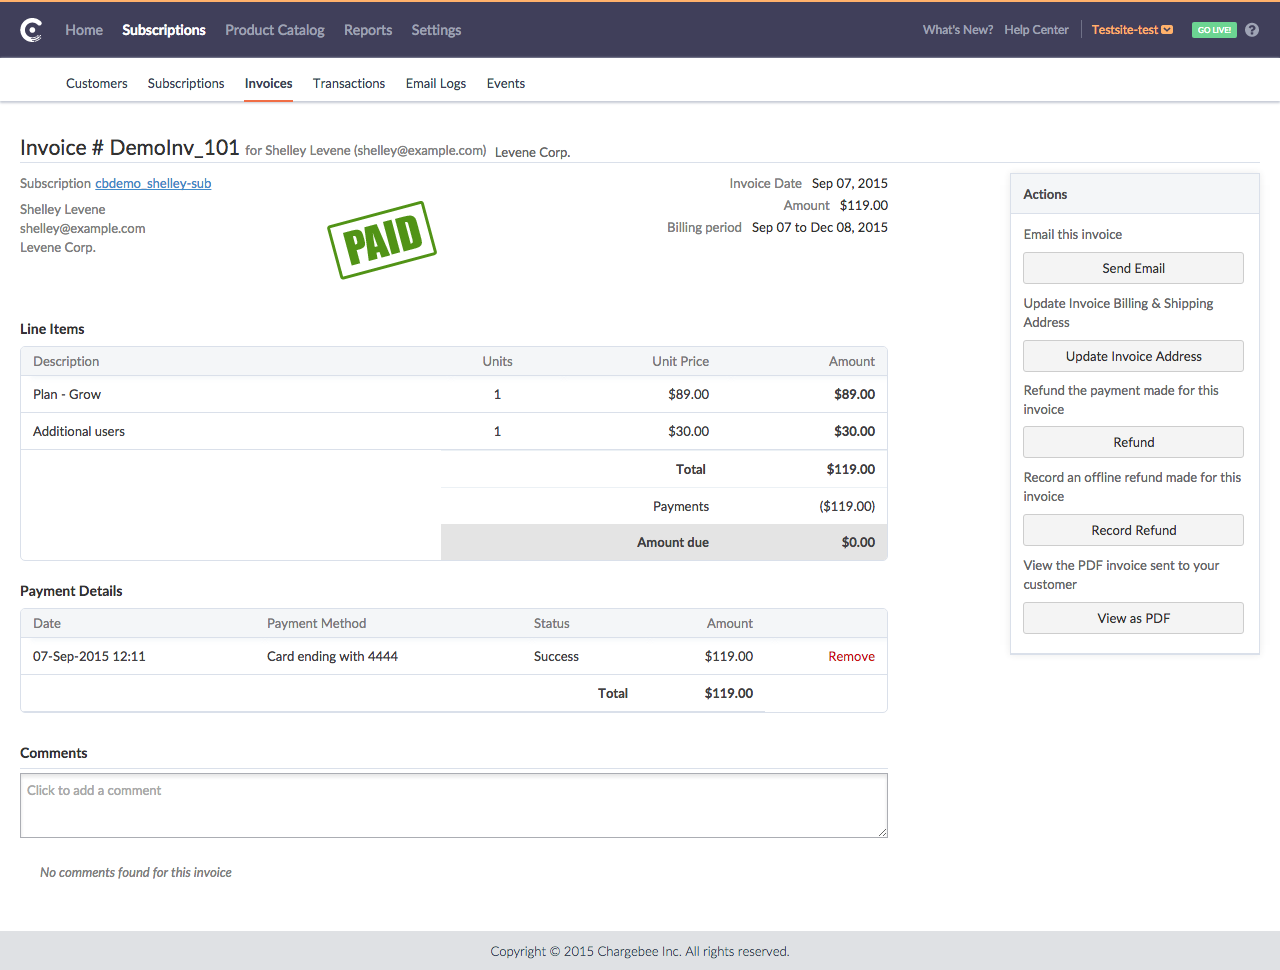 Chargebee Software - Chargebee Invoice Details